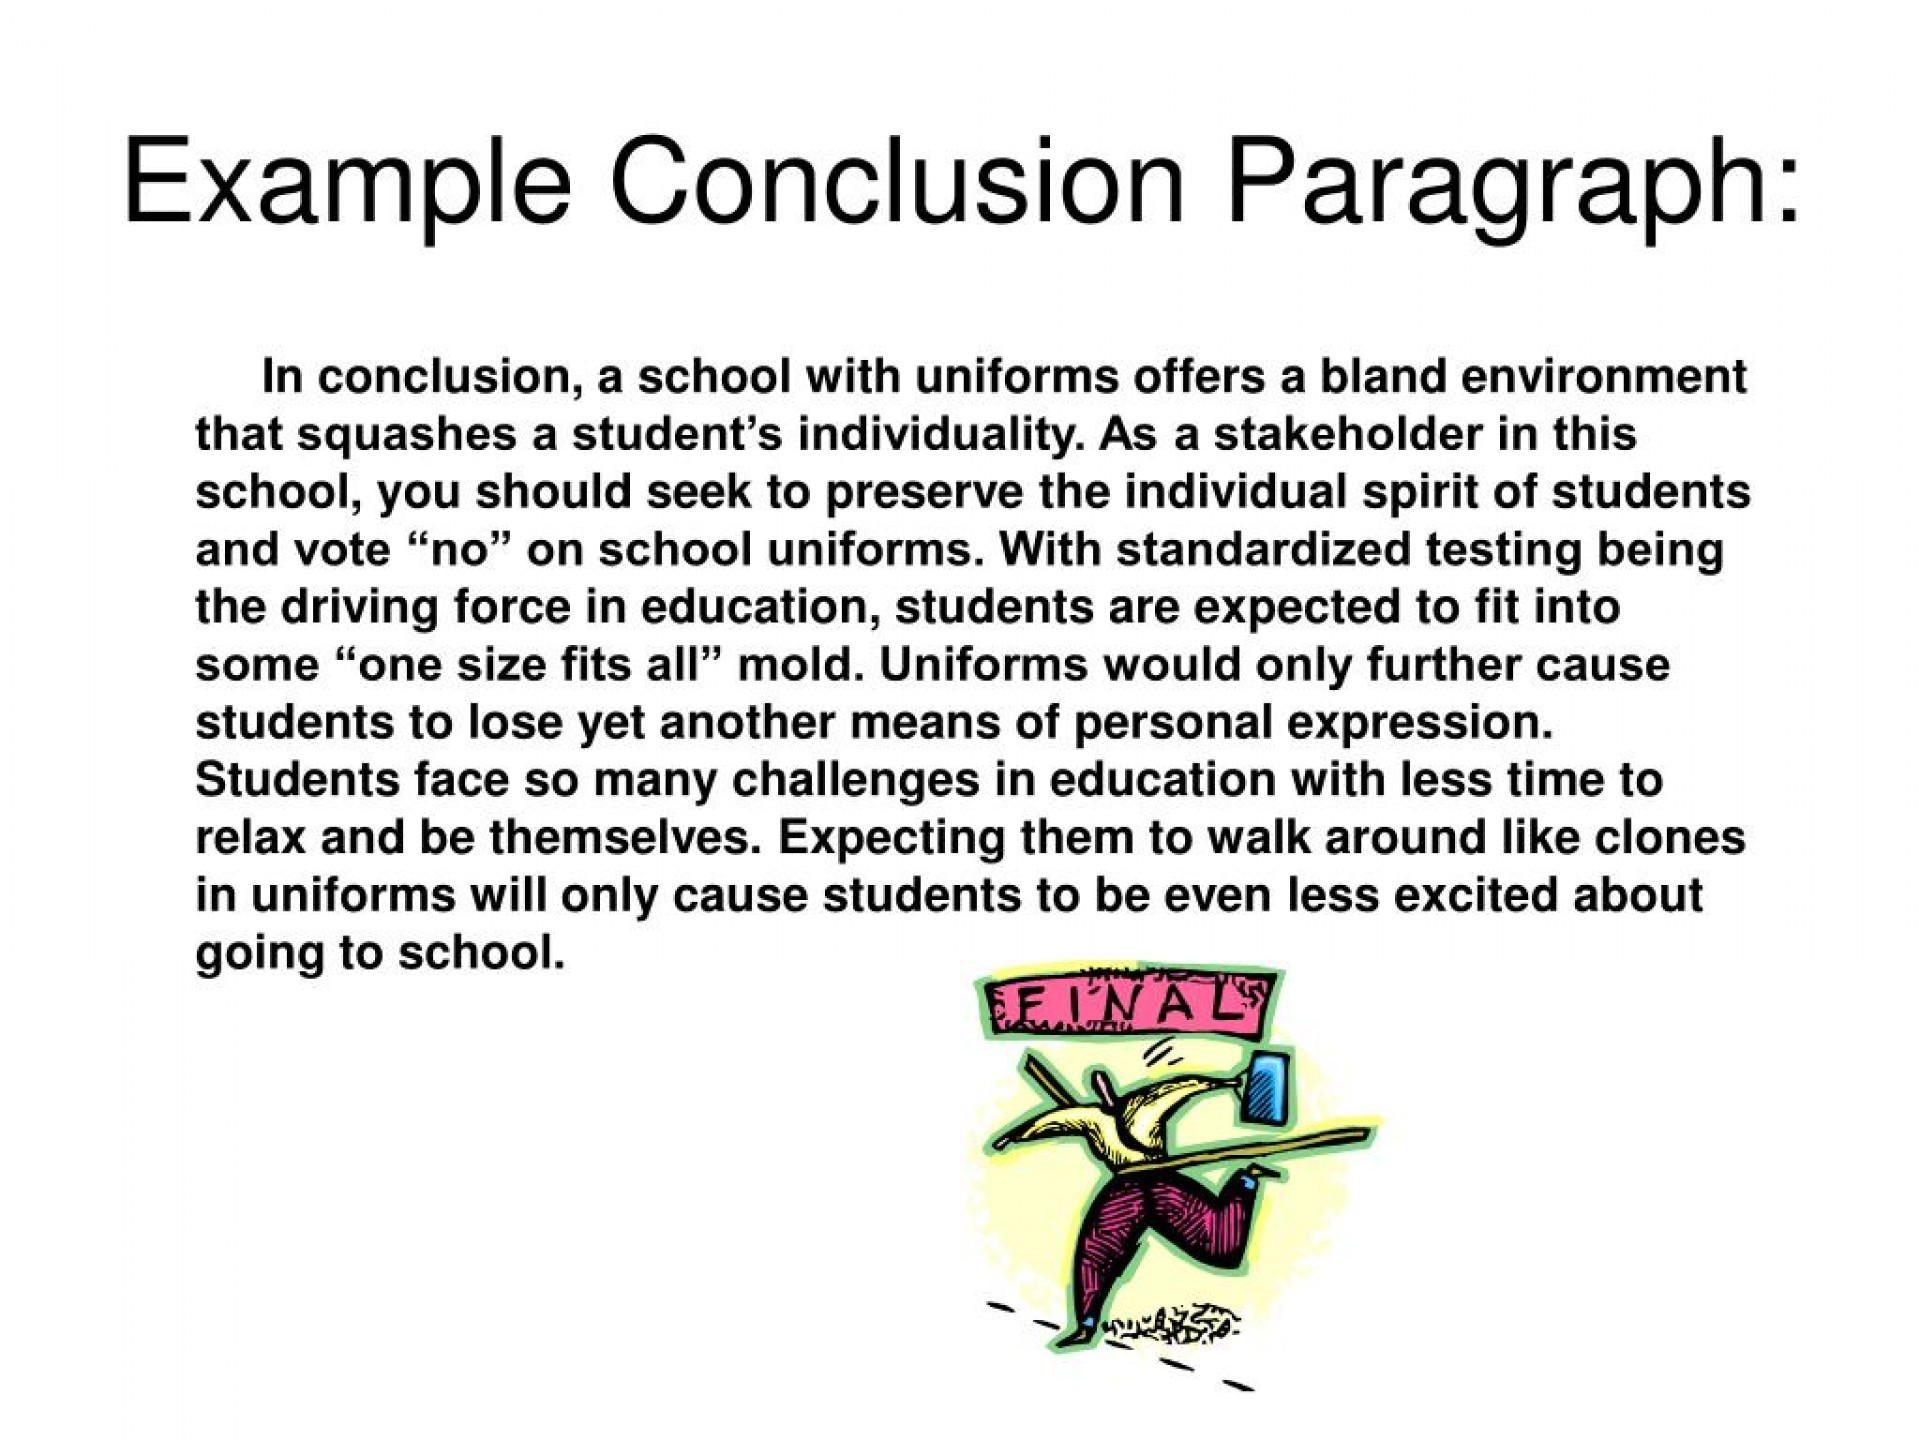 007 Example Conclusion Paragraph L Essay Good For Wondrous A An Writing Pdf 1920